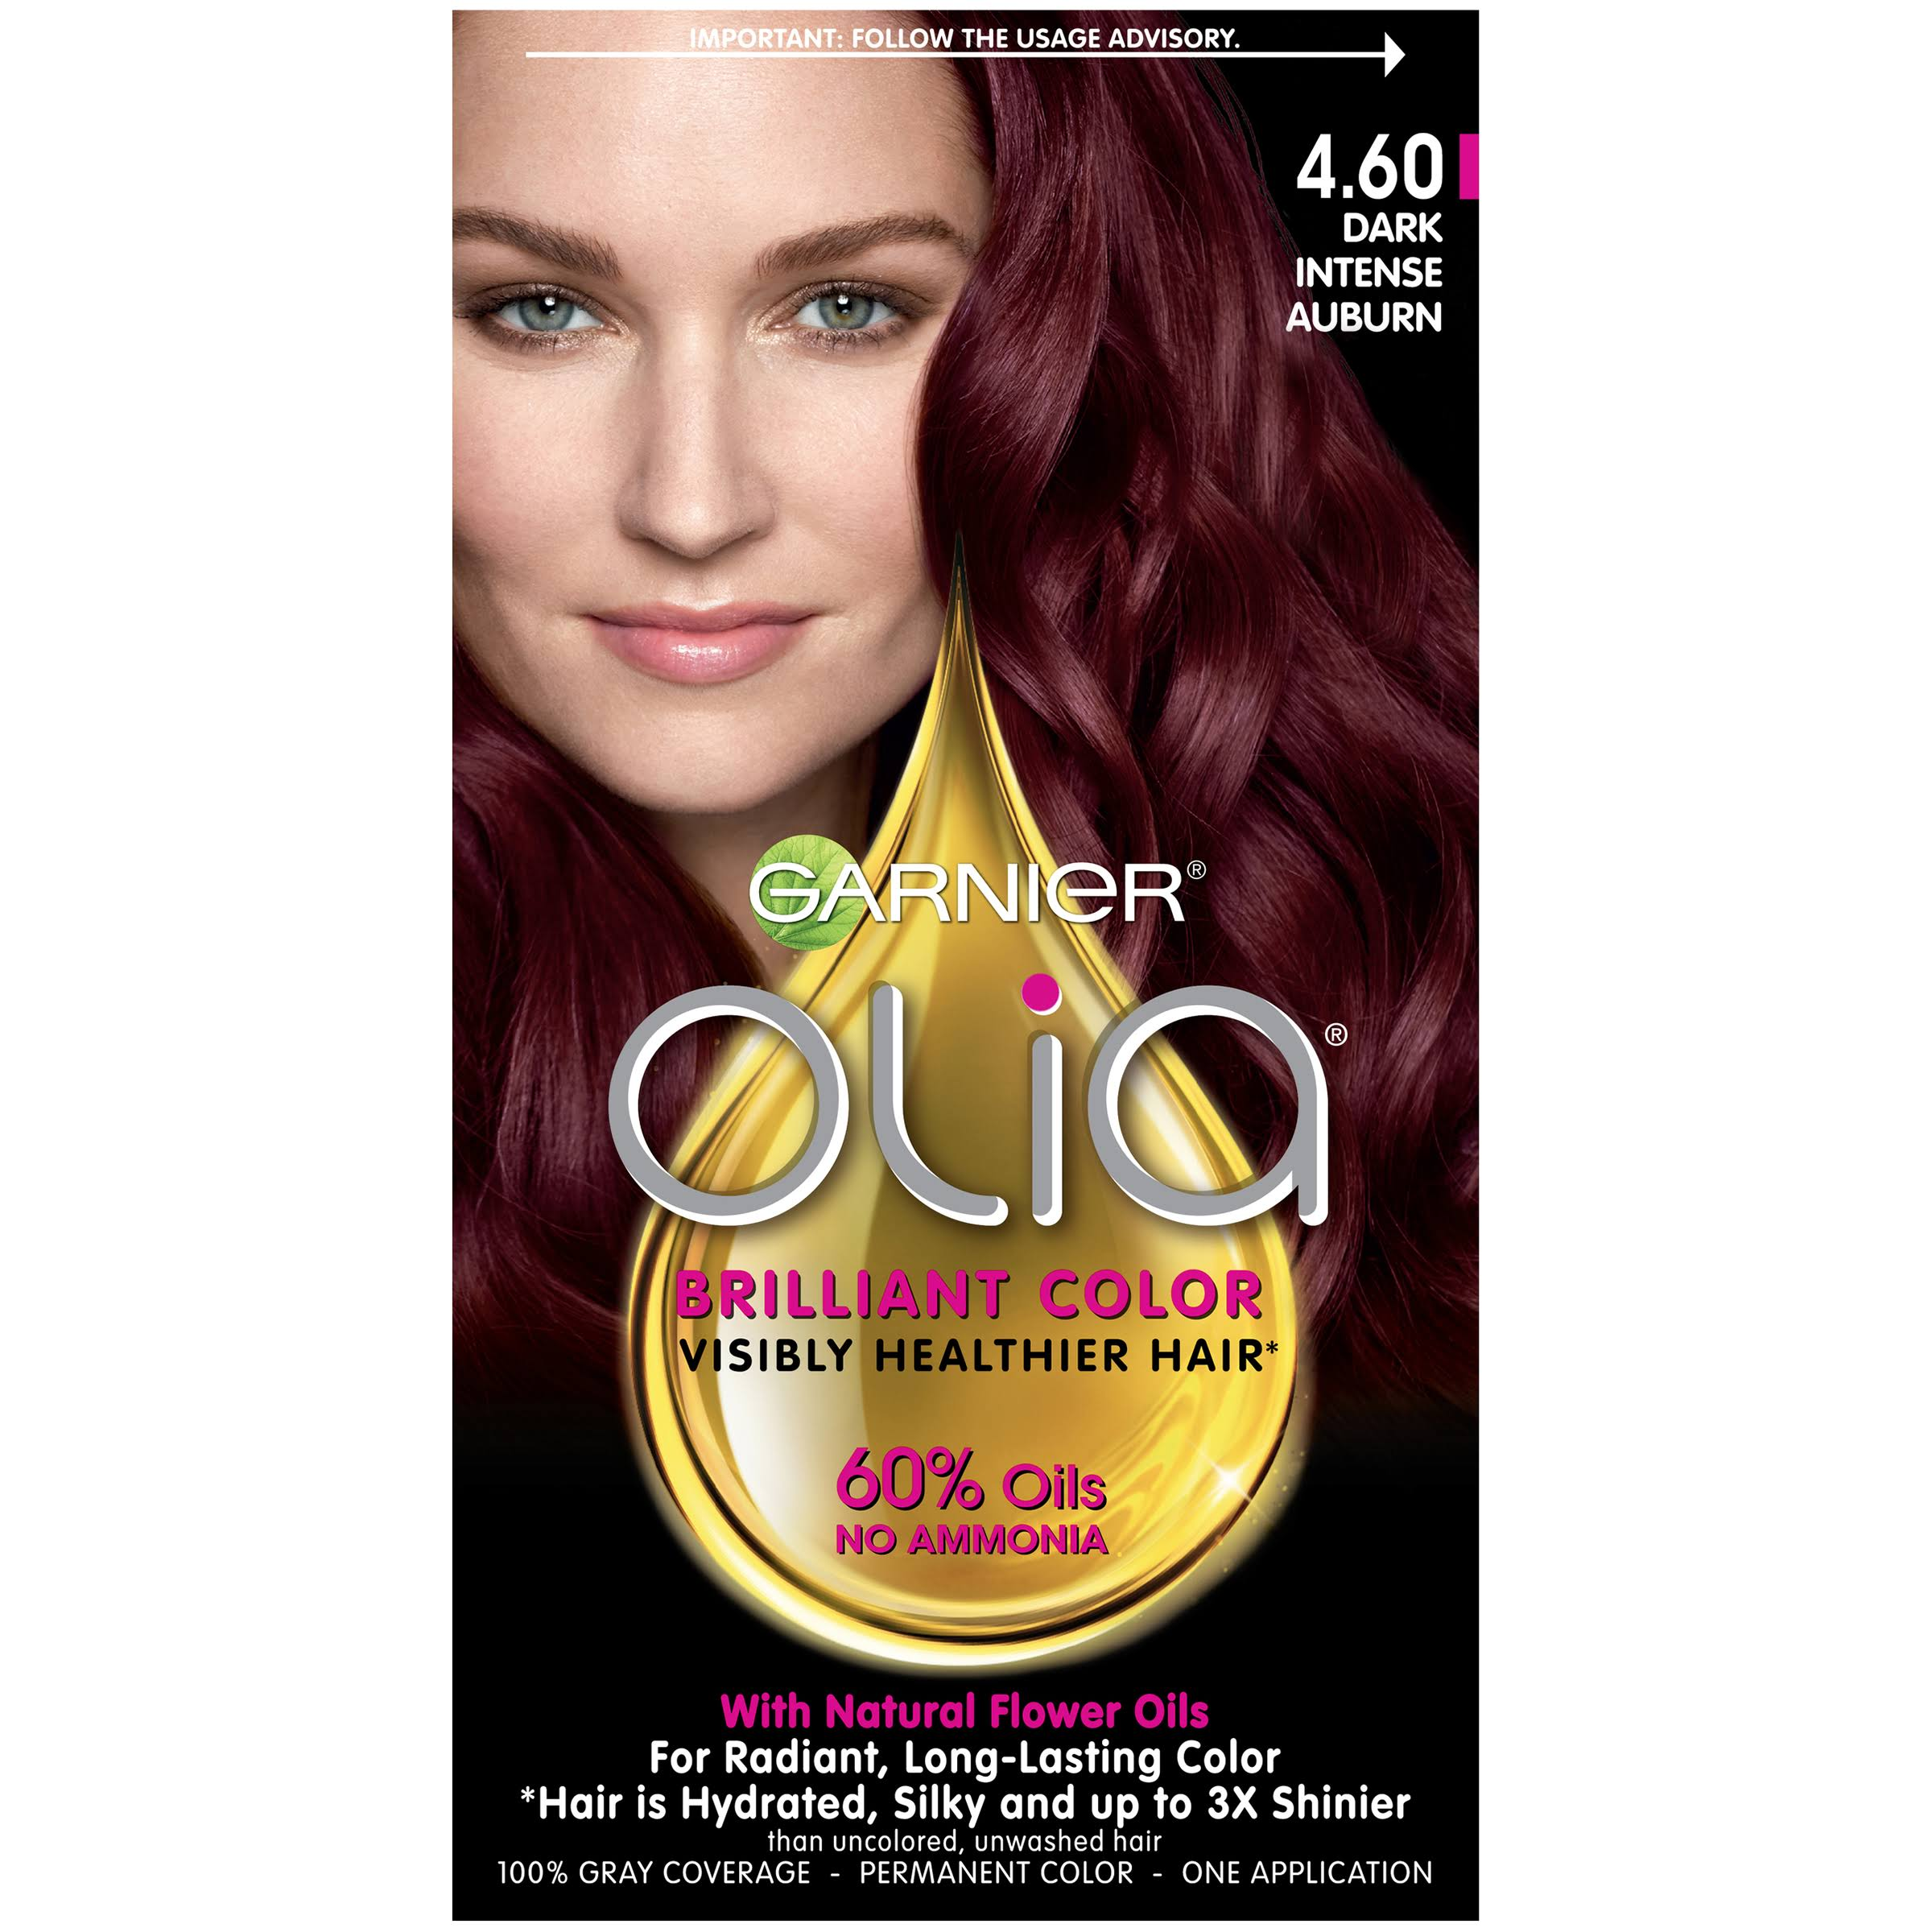 Garnier Olia Oil Powered Permanent Haircolor - 4.60 Dark Intense Auburn